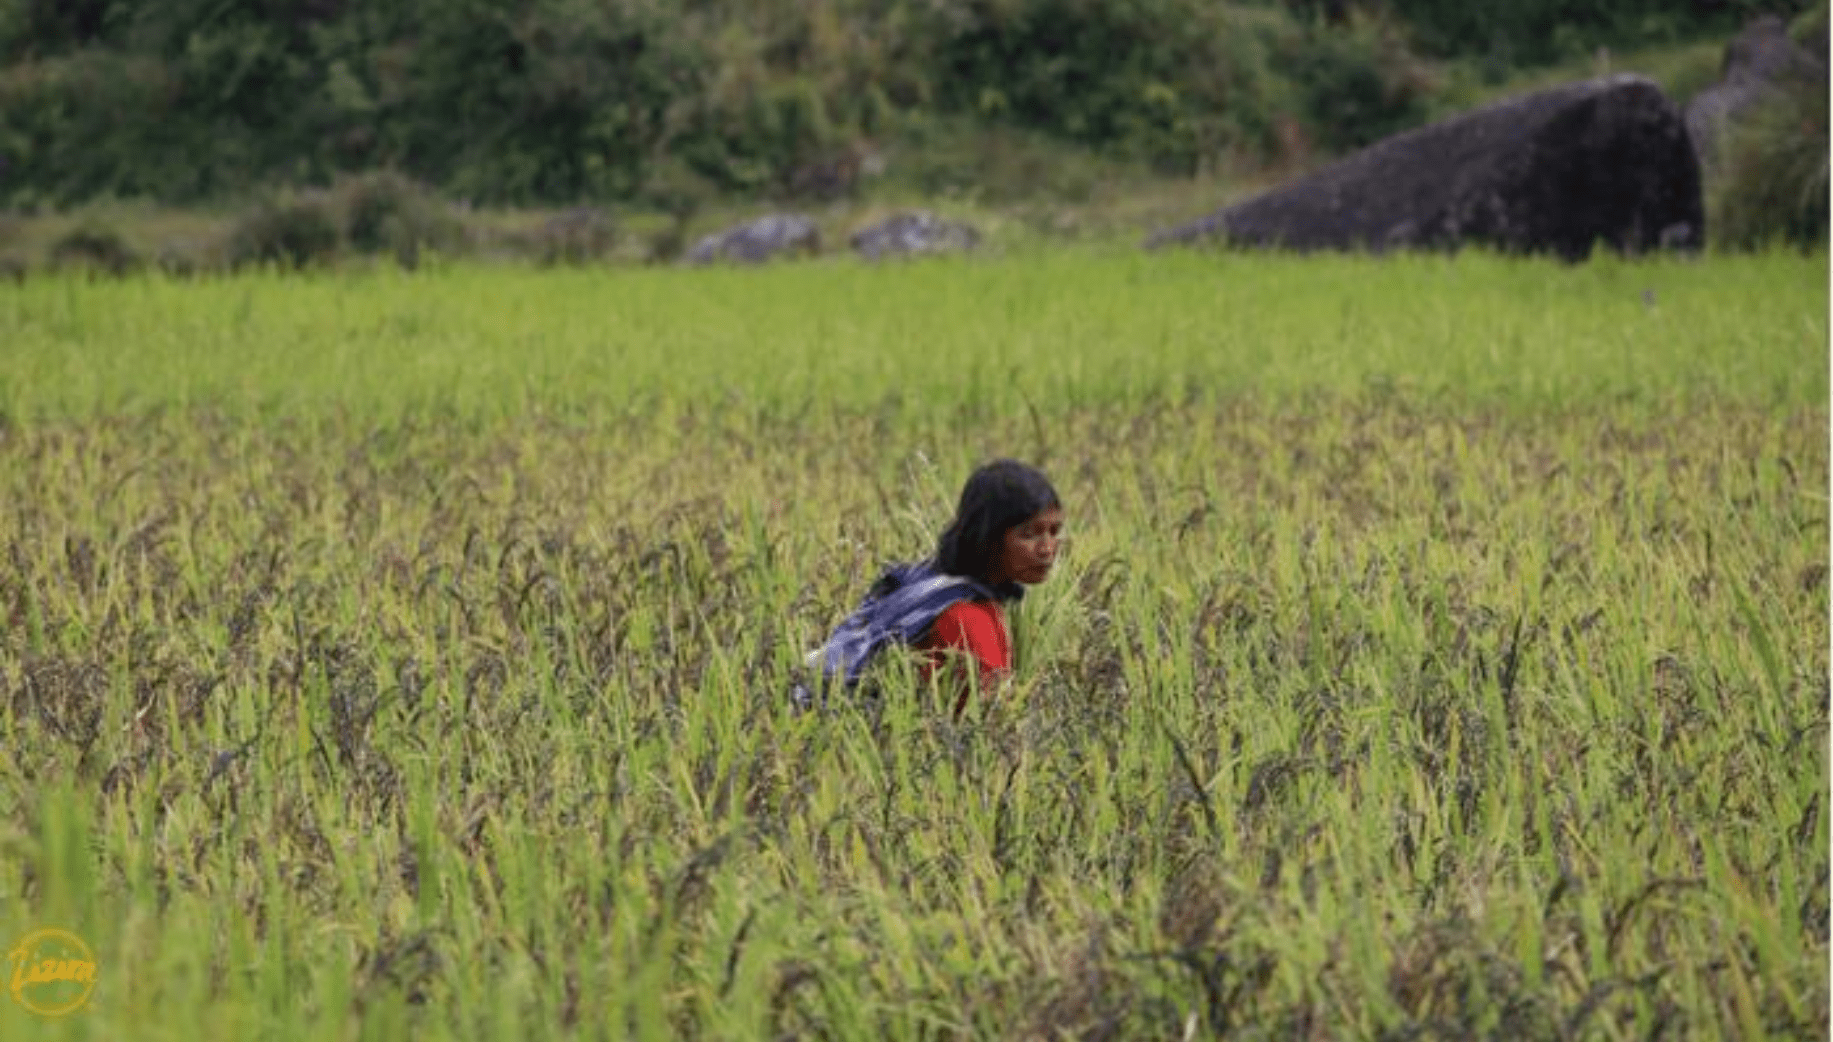 Woman from Meghalaya village in her field